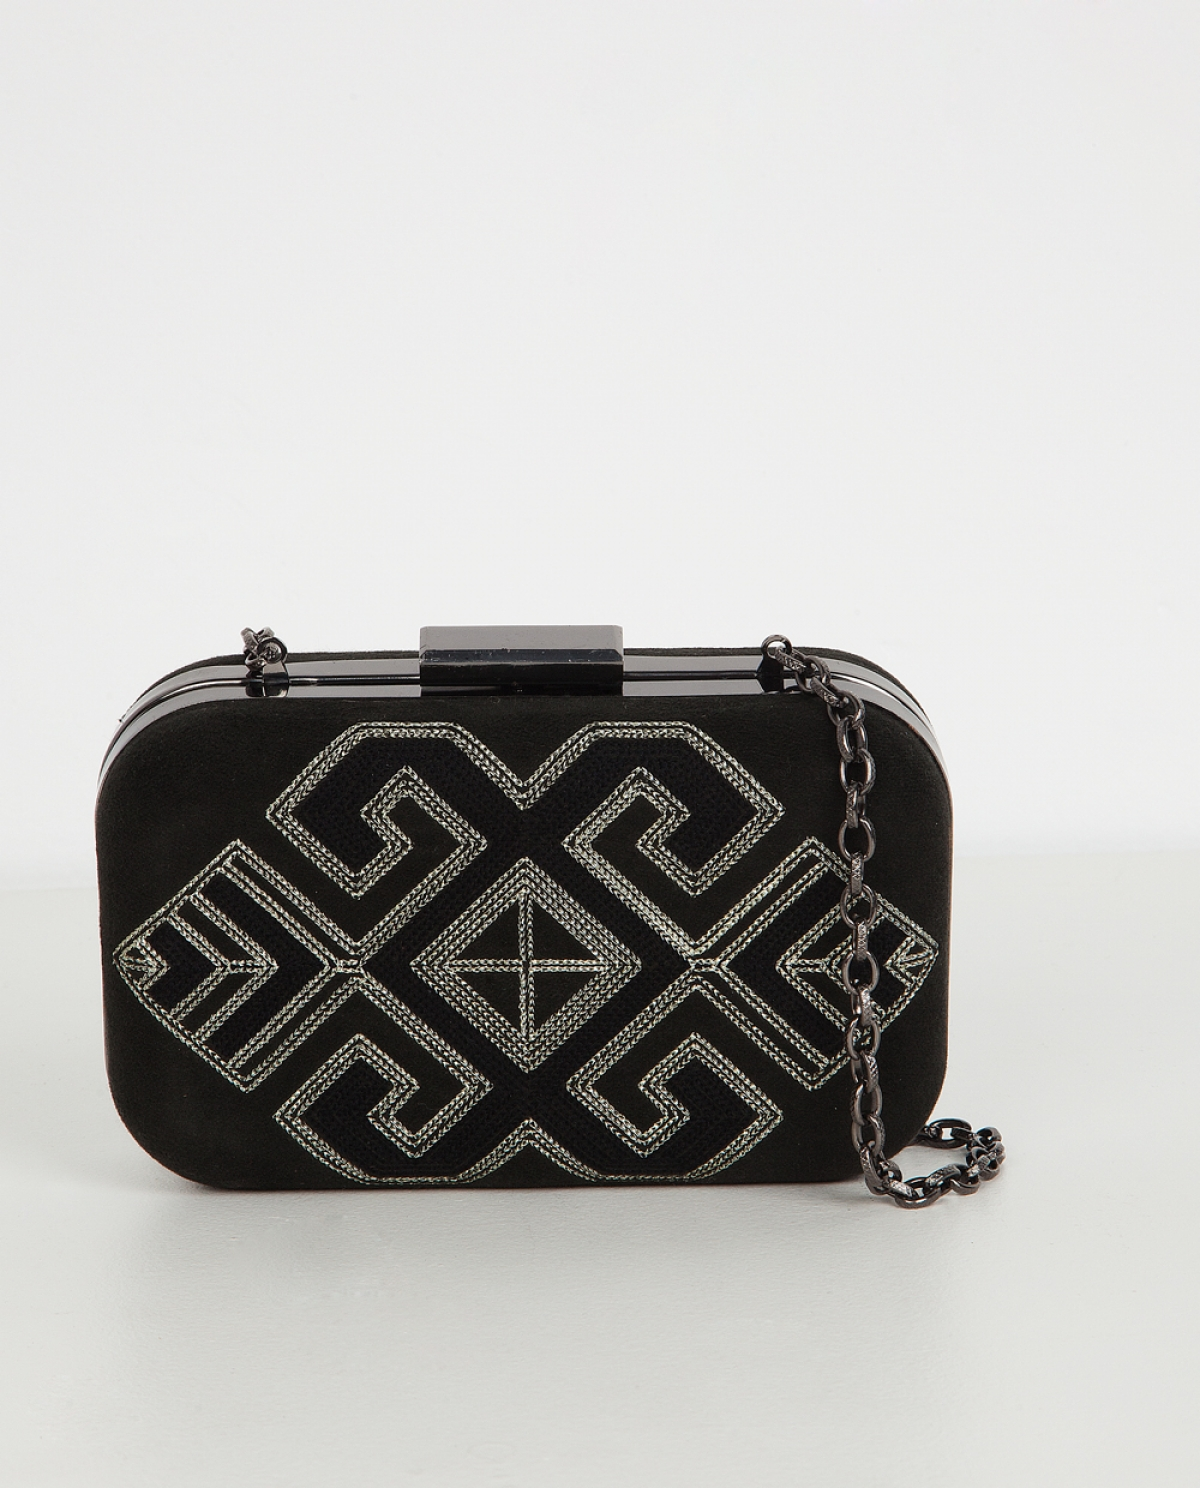 Hermes Embroidered Velvet Clutch